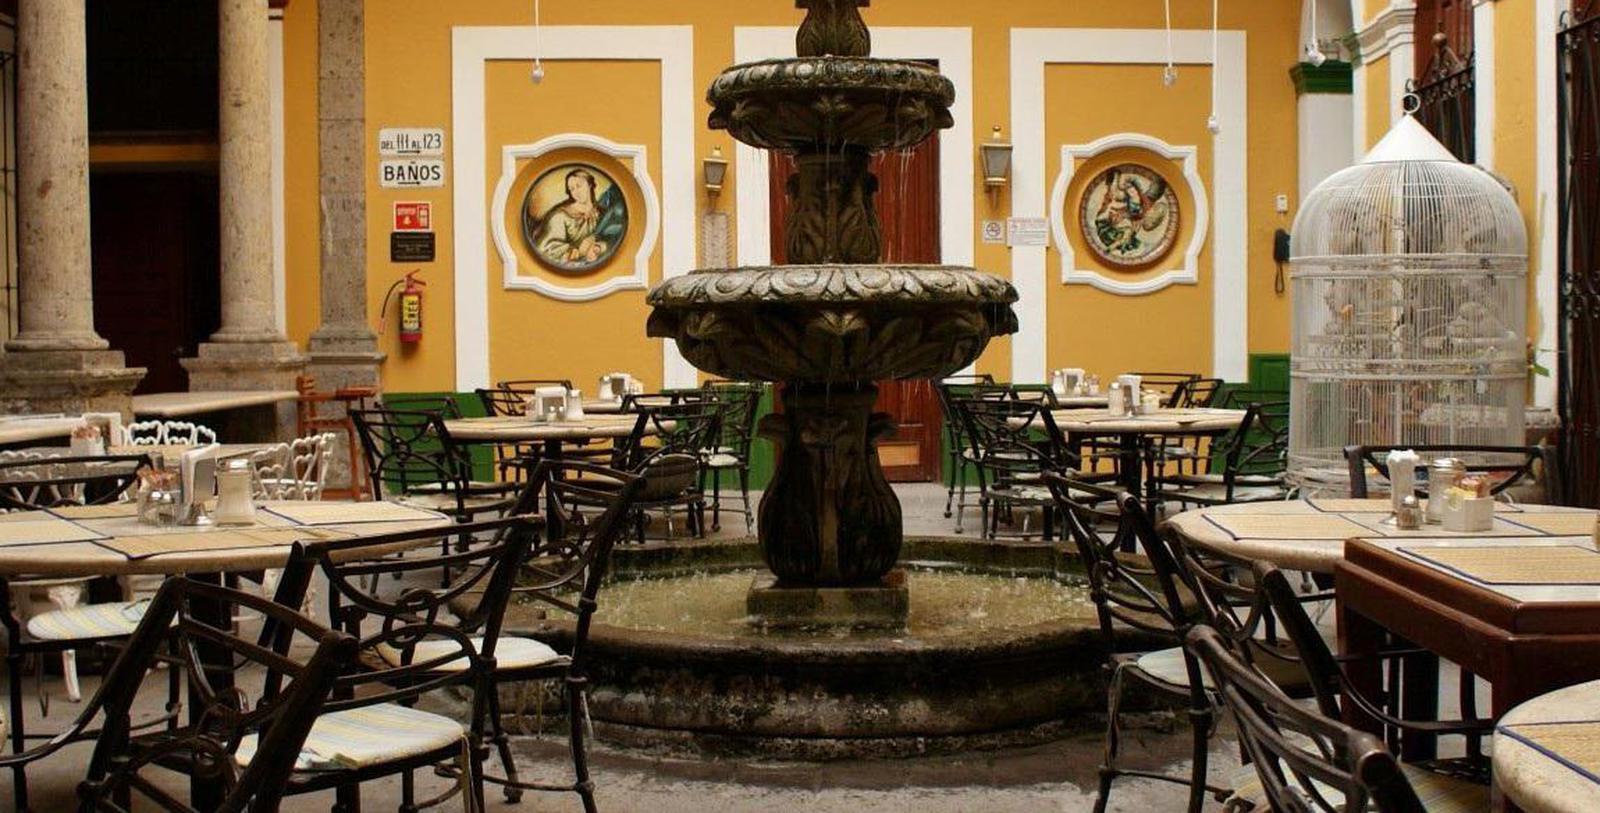 Image of Courtyard Seating & Fountain, Hotel San Francisco Plaza, Guadalajara, 1896, Member of Historic Hotels Worldwide, Discover